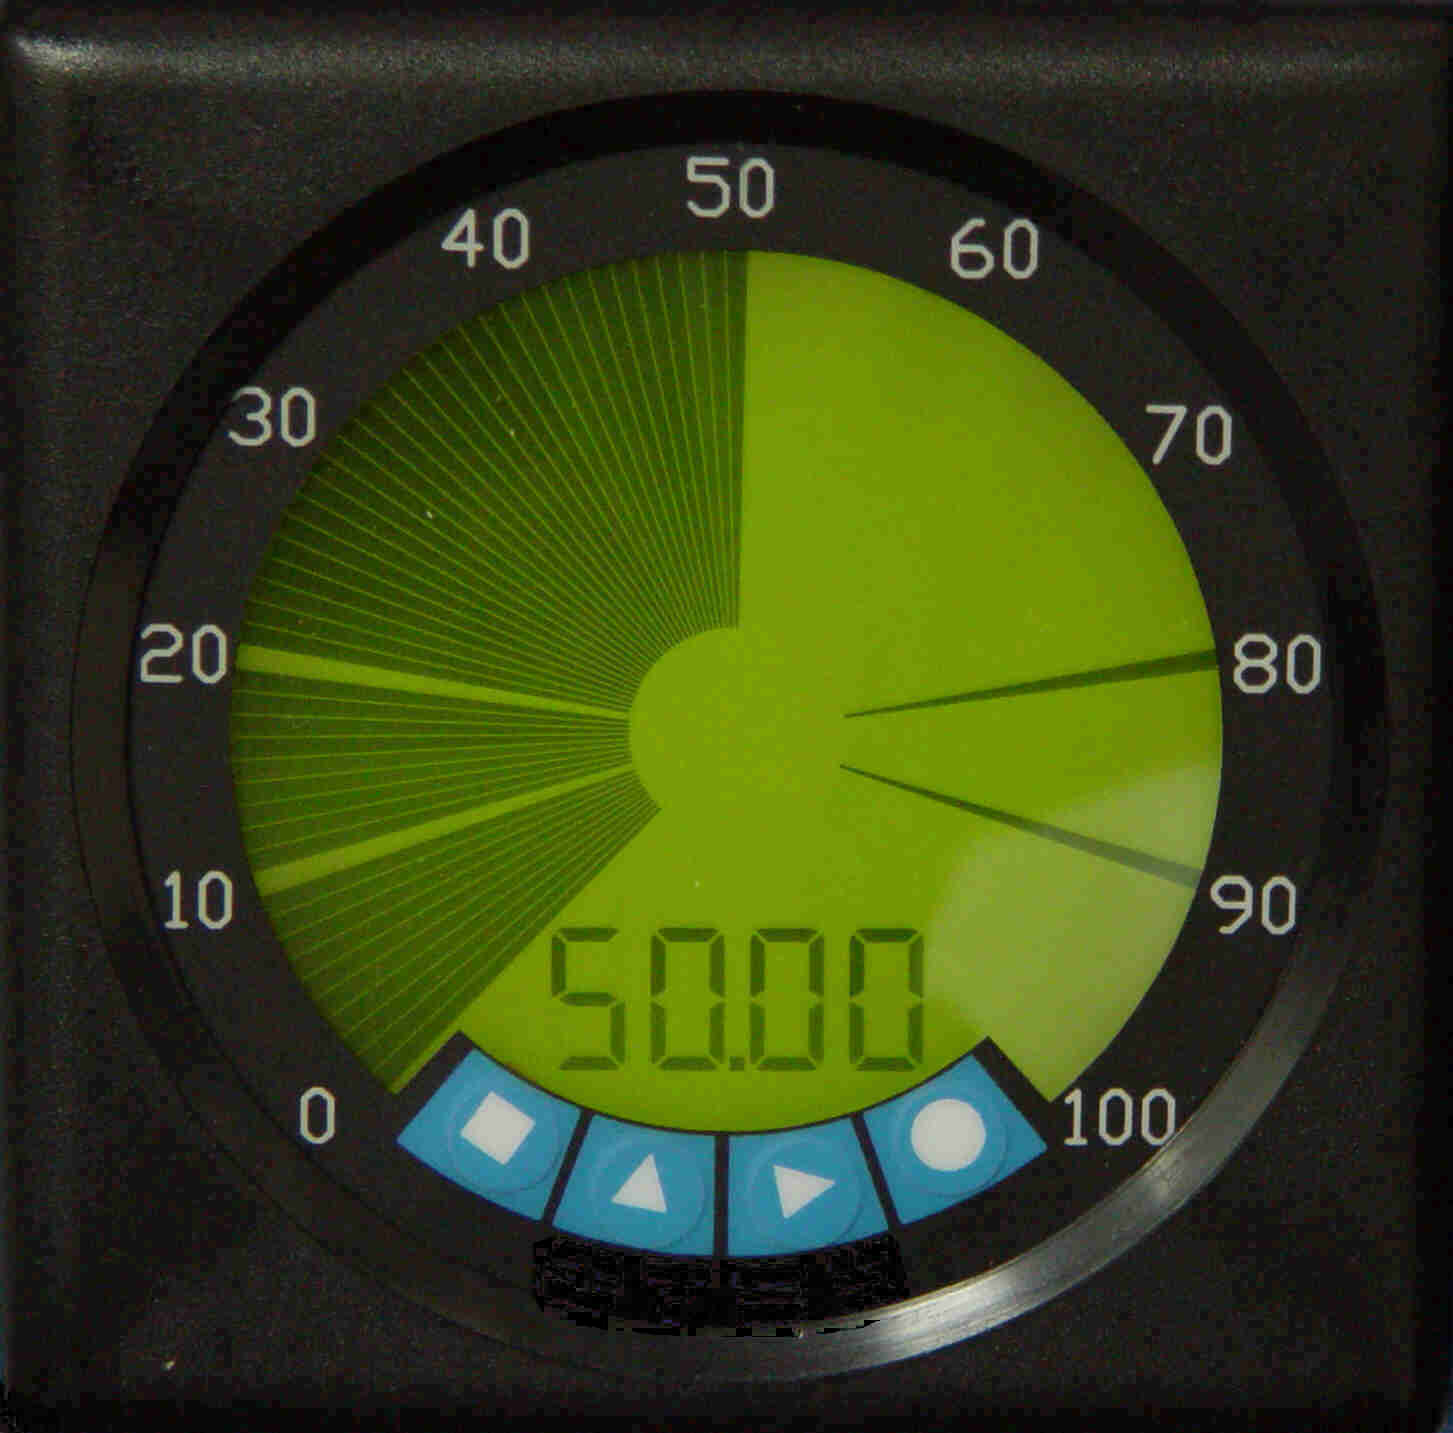 LCD replacement for DB40 analog meter